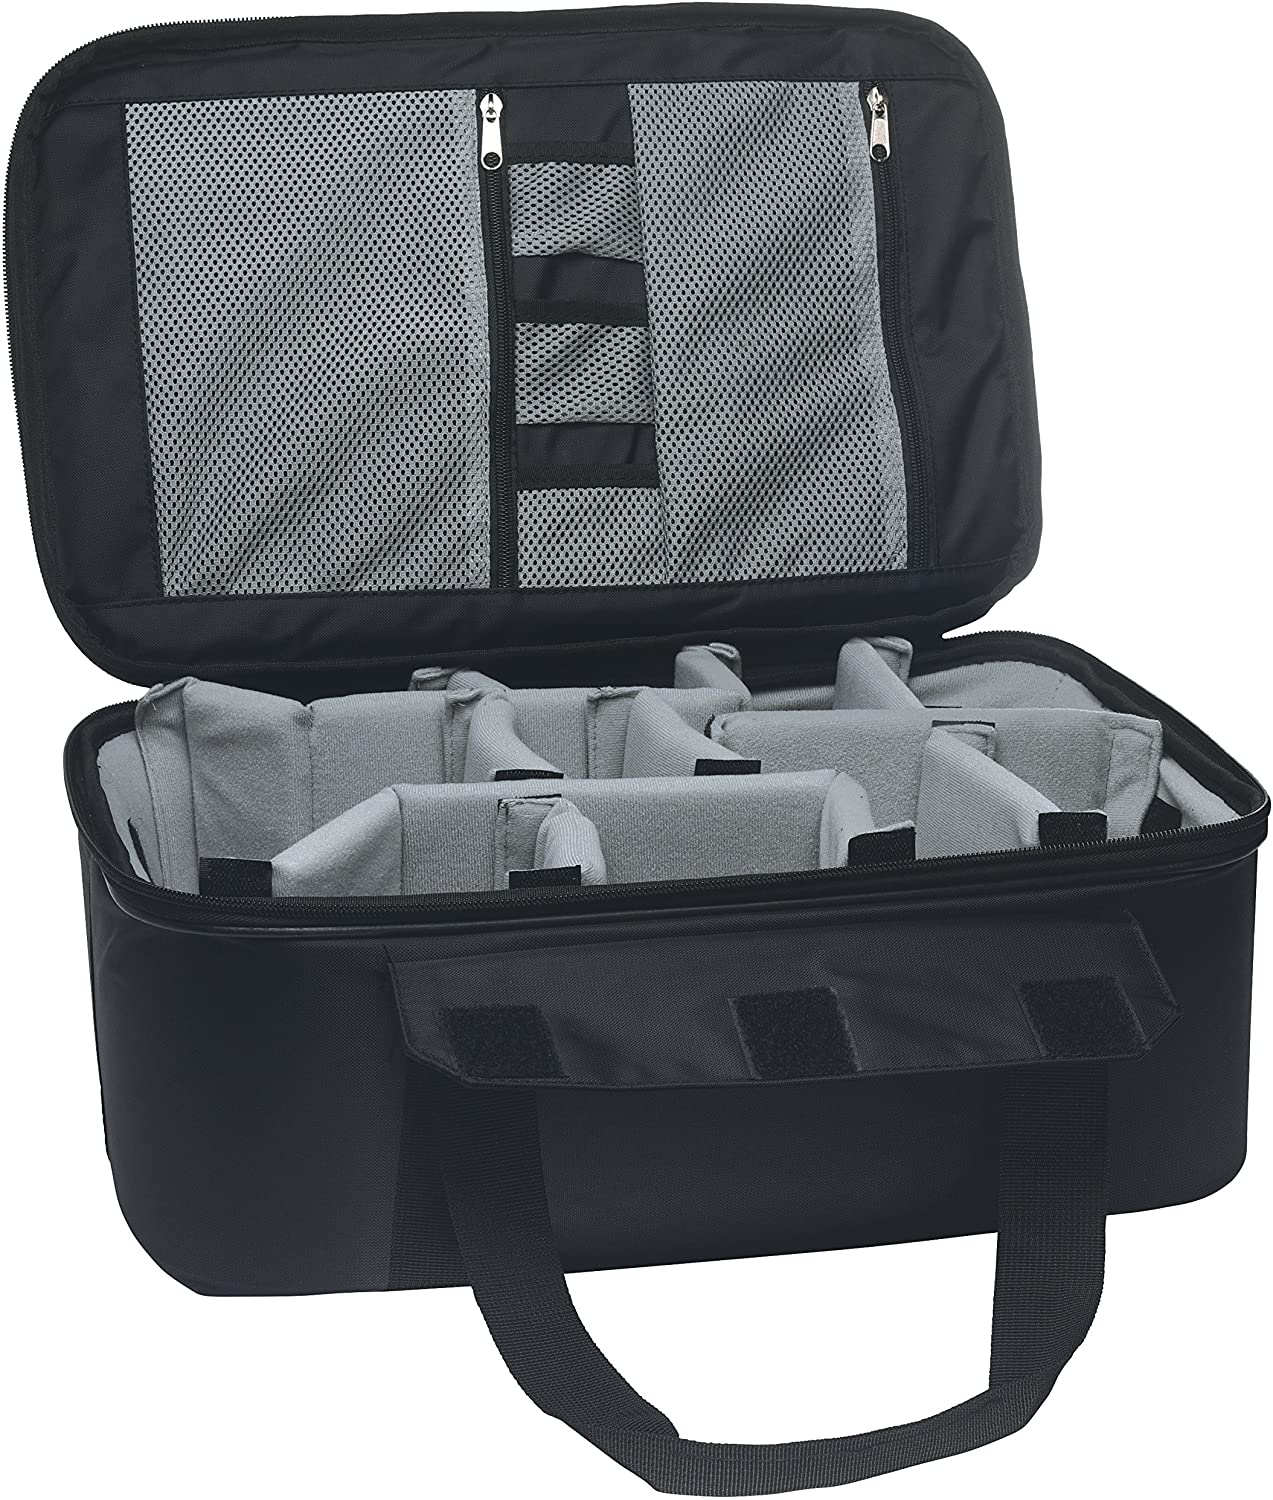 DLC Stowaway Insert Gear Case with Padded Adjustable Dividers